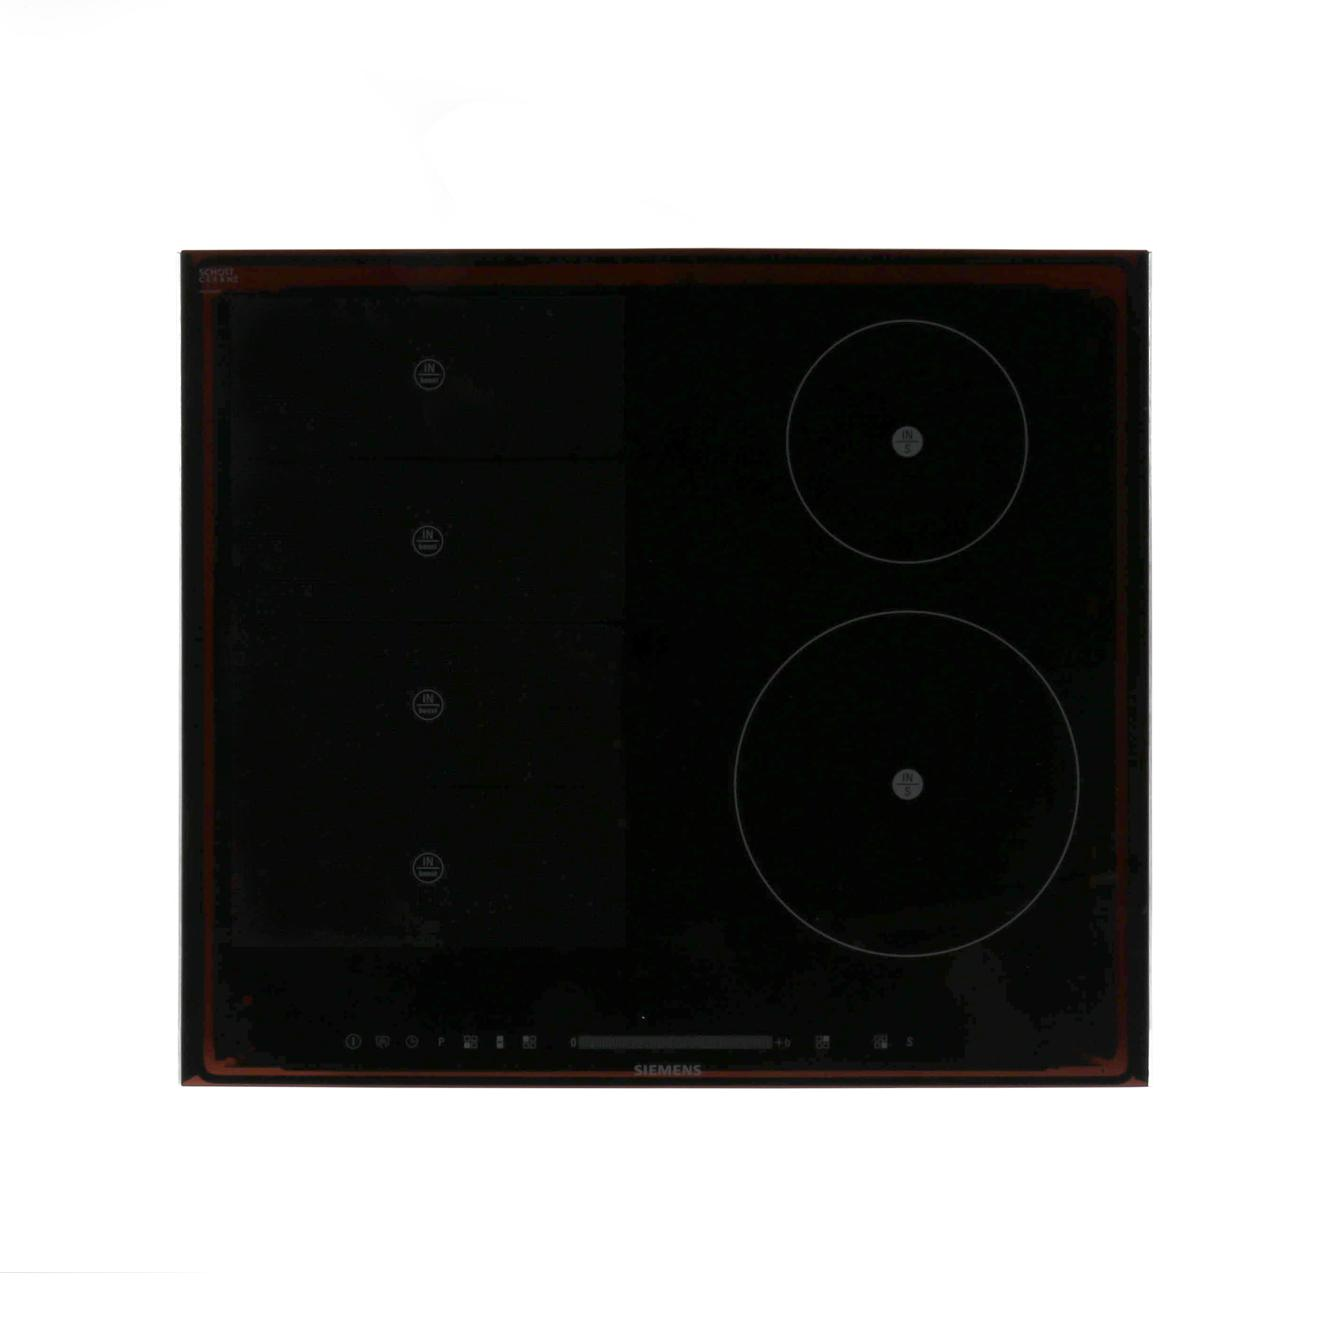 Siemens EH675MN27E Induction Hob